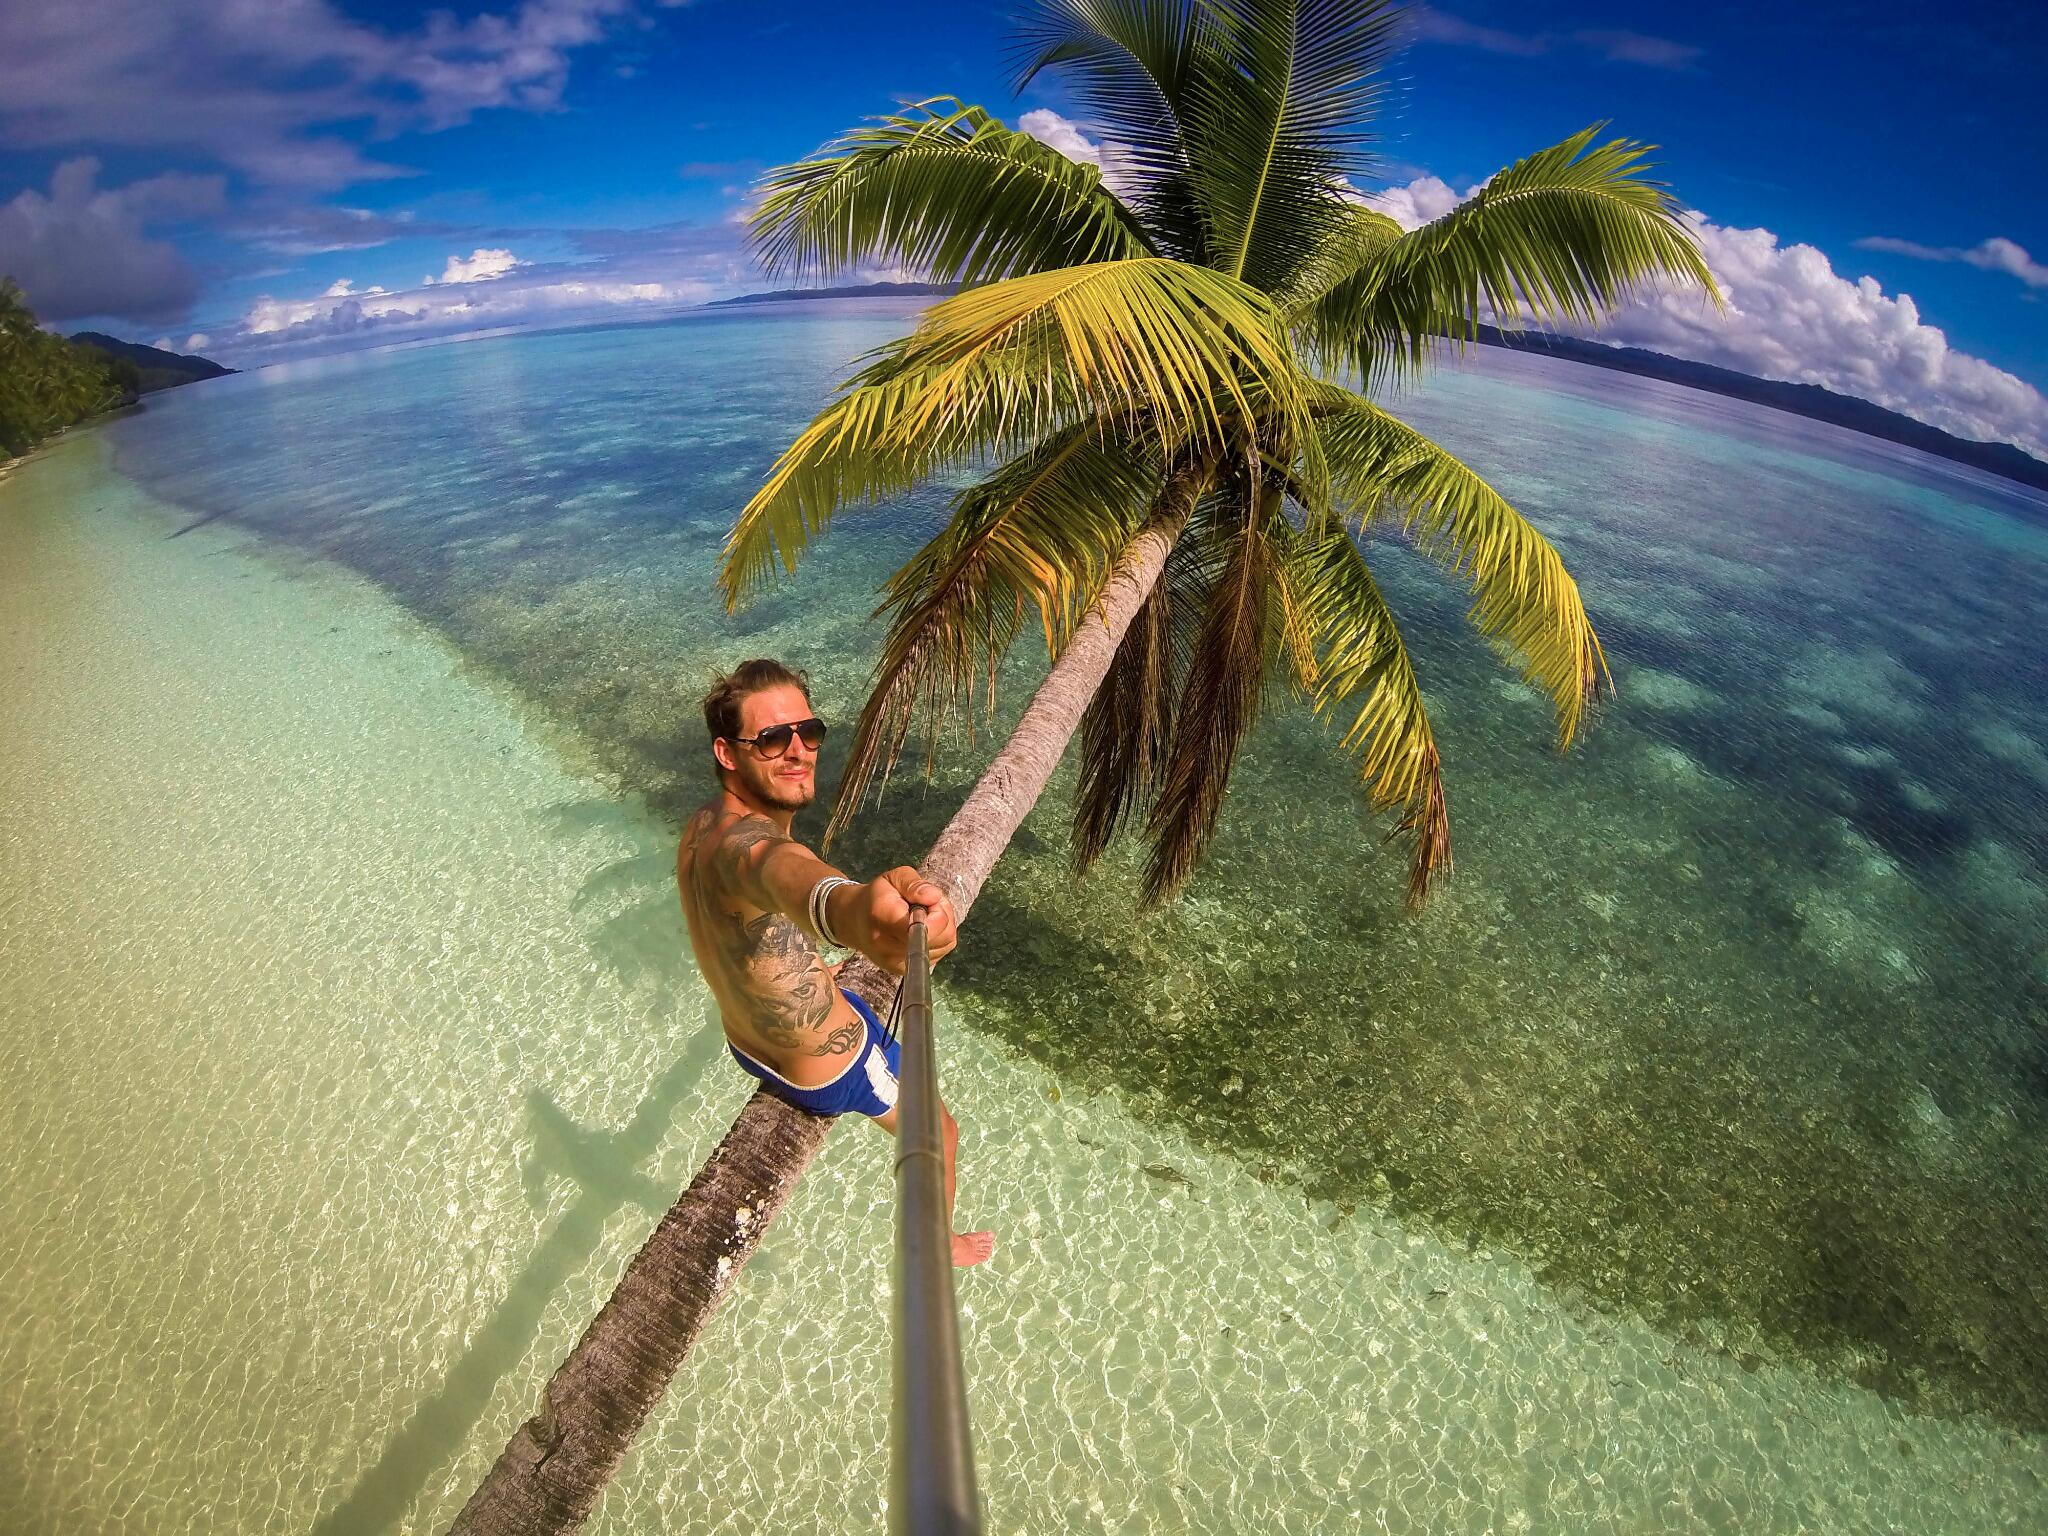 Photo of the Day! Climbing a coconut tree in Indonesia for the morning beverage. Photo by Loic Bonin. #GoPro #Travel http://t.co/Xf7iMUgT71